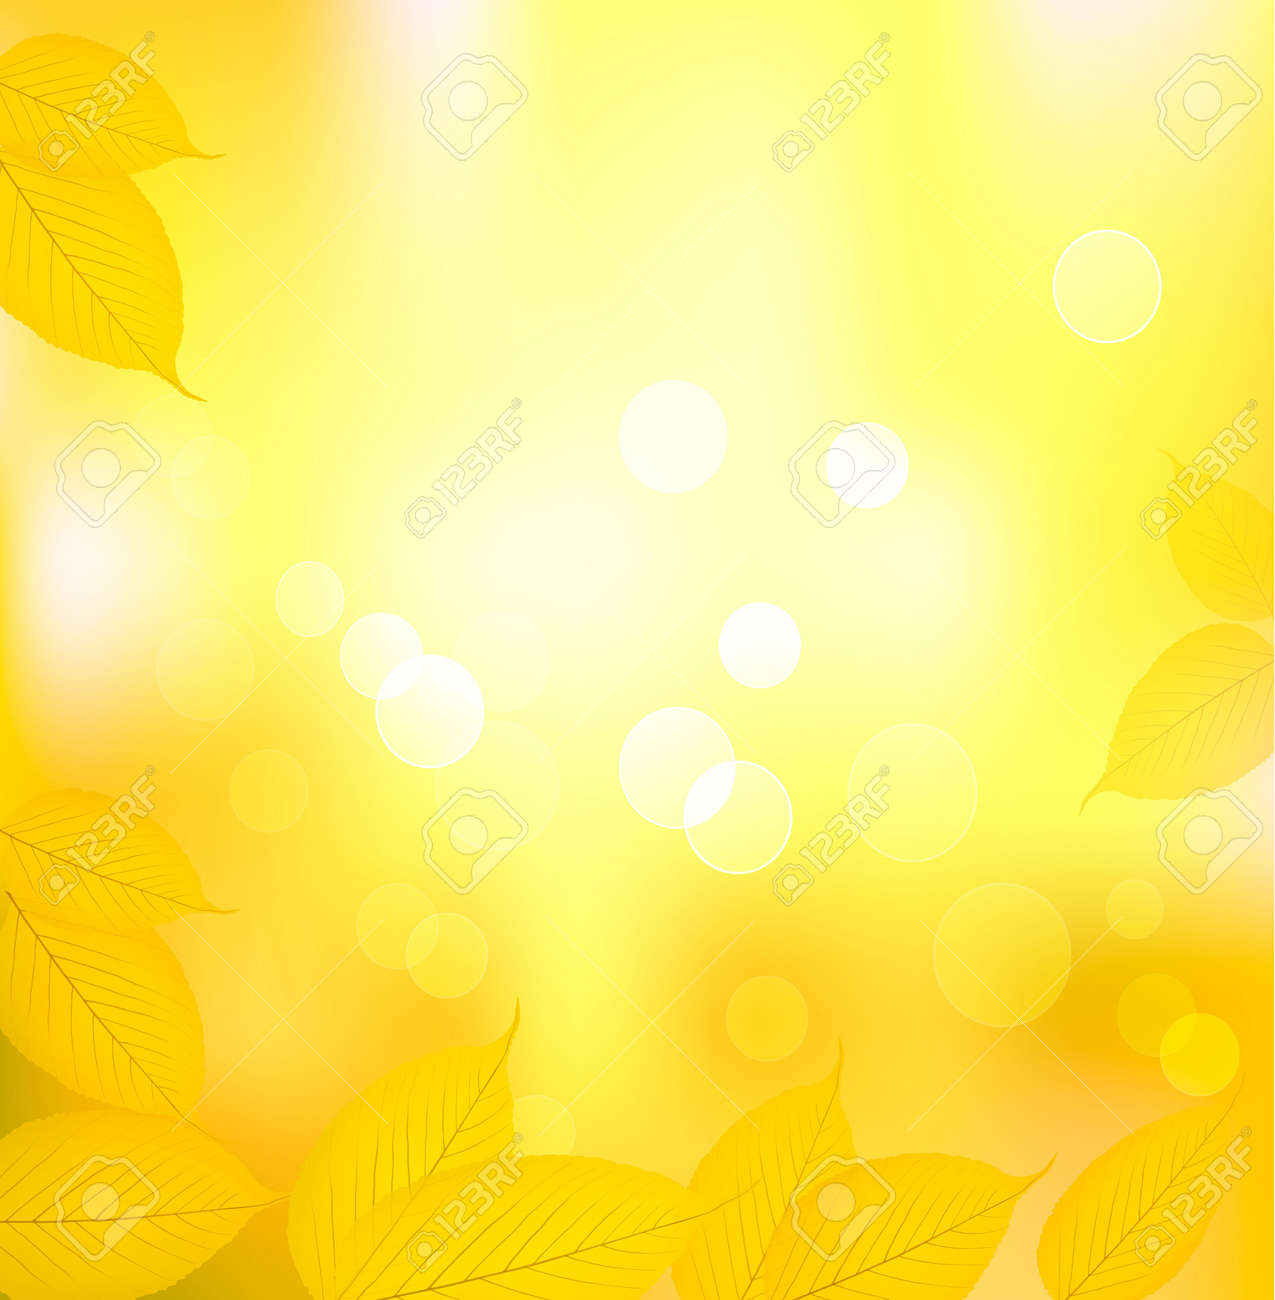 Autumn background with yellow leaves. Back to school. Vector illustration Stock Vector - 10205190